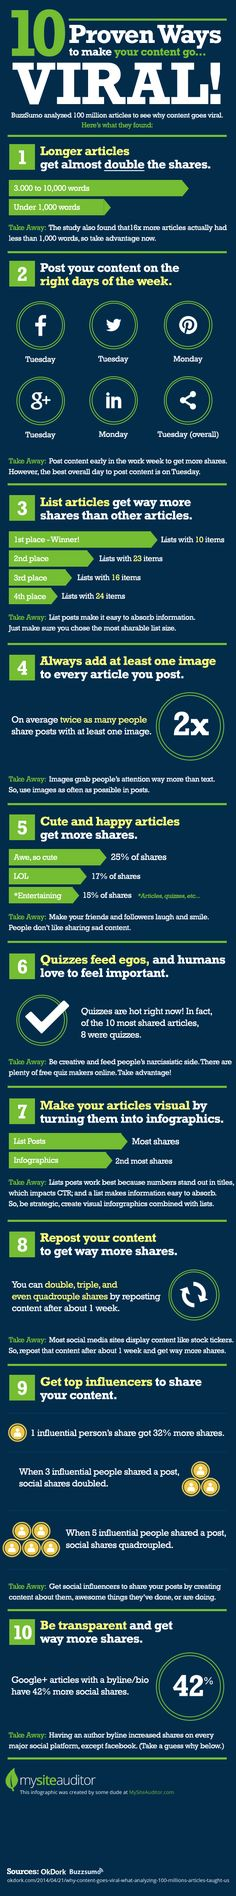 10 Proven Ways to Make Your Content Go Viral [Infographic].